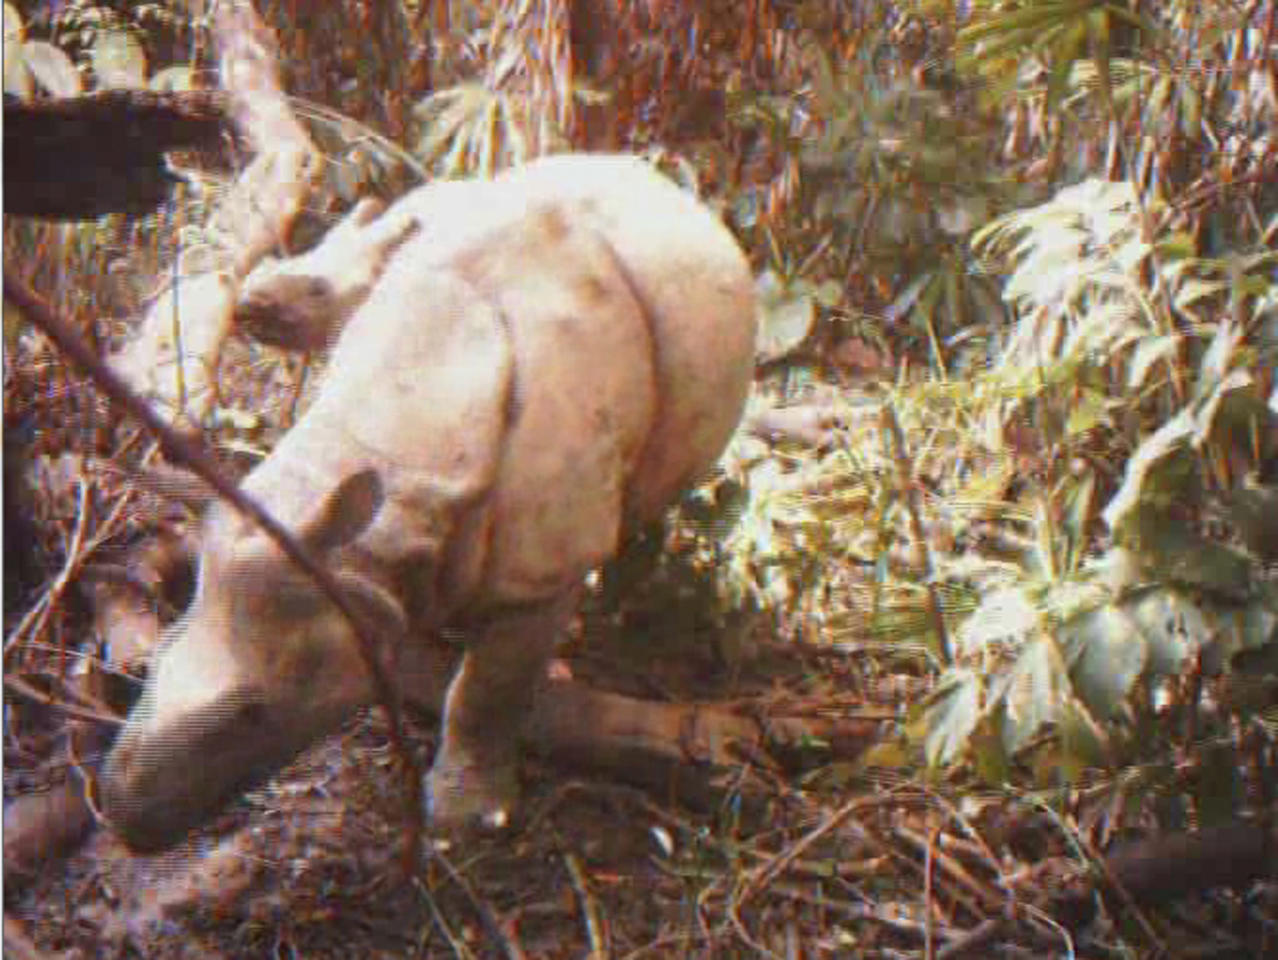 In this undated frame grab released by WWF-Indonesia and Ujung Kulon National Park Authority, a female Javan rhino walks with her calf in Ujung Kulon National Park, Indonesia. Four of the world's most rare rhinoceroses were captured by camera traps installed in an Indonesian national park, an environmental group said Monday, Feb. 28, 2011. (AP Photo/WWF-Indonesia and Ujung Kulon National Park Authority, HO) NO SALES, EDITORIAL USE ONLY, NO ARCHIVES